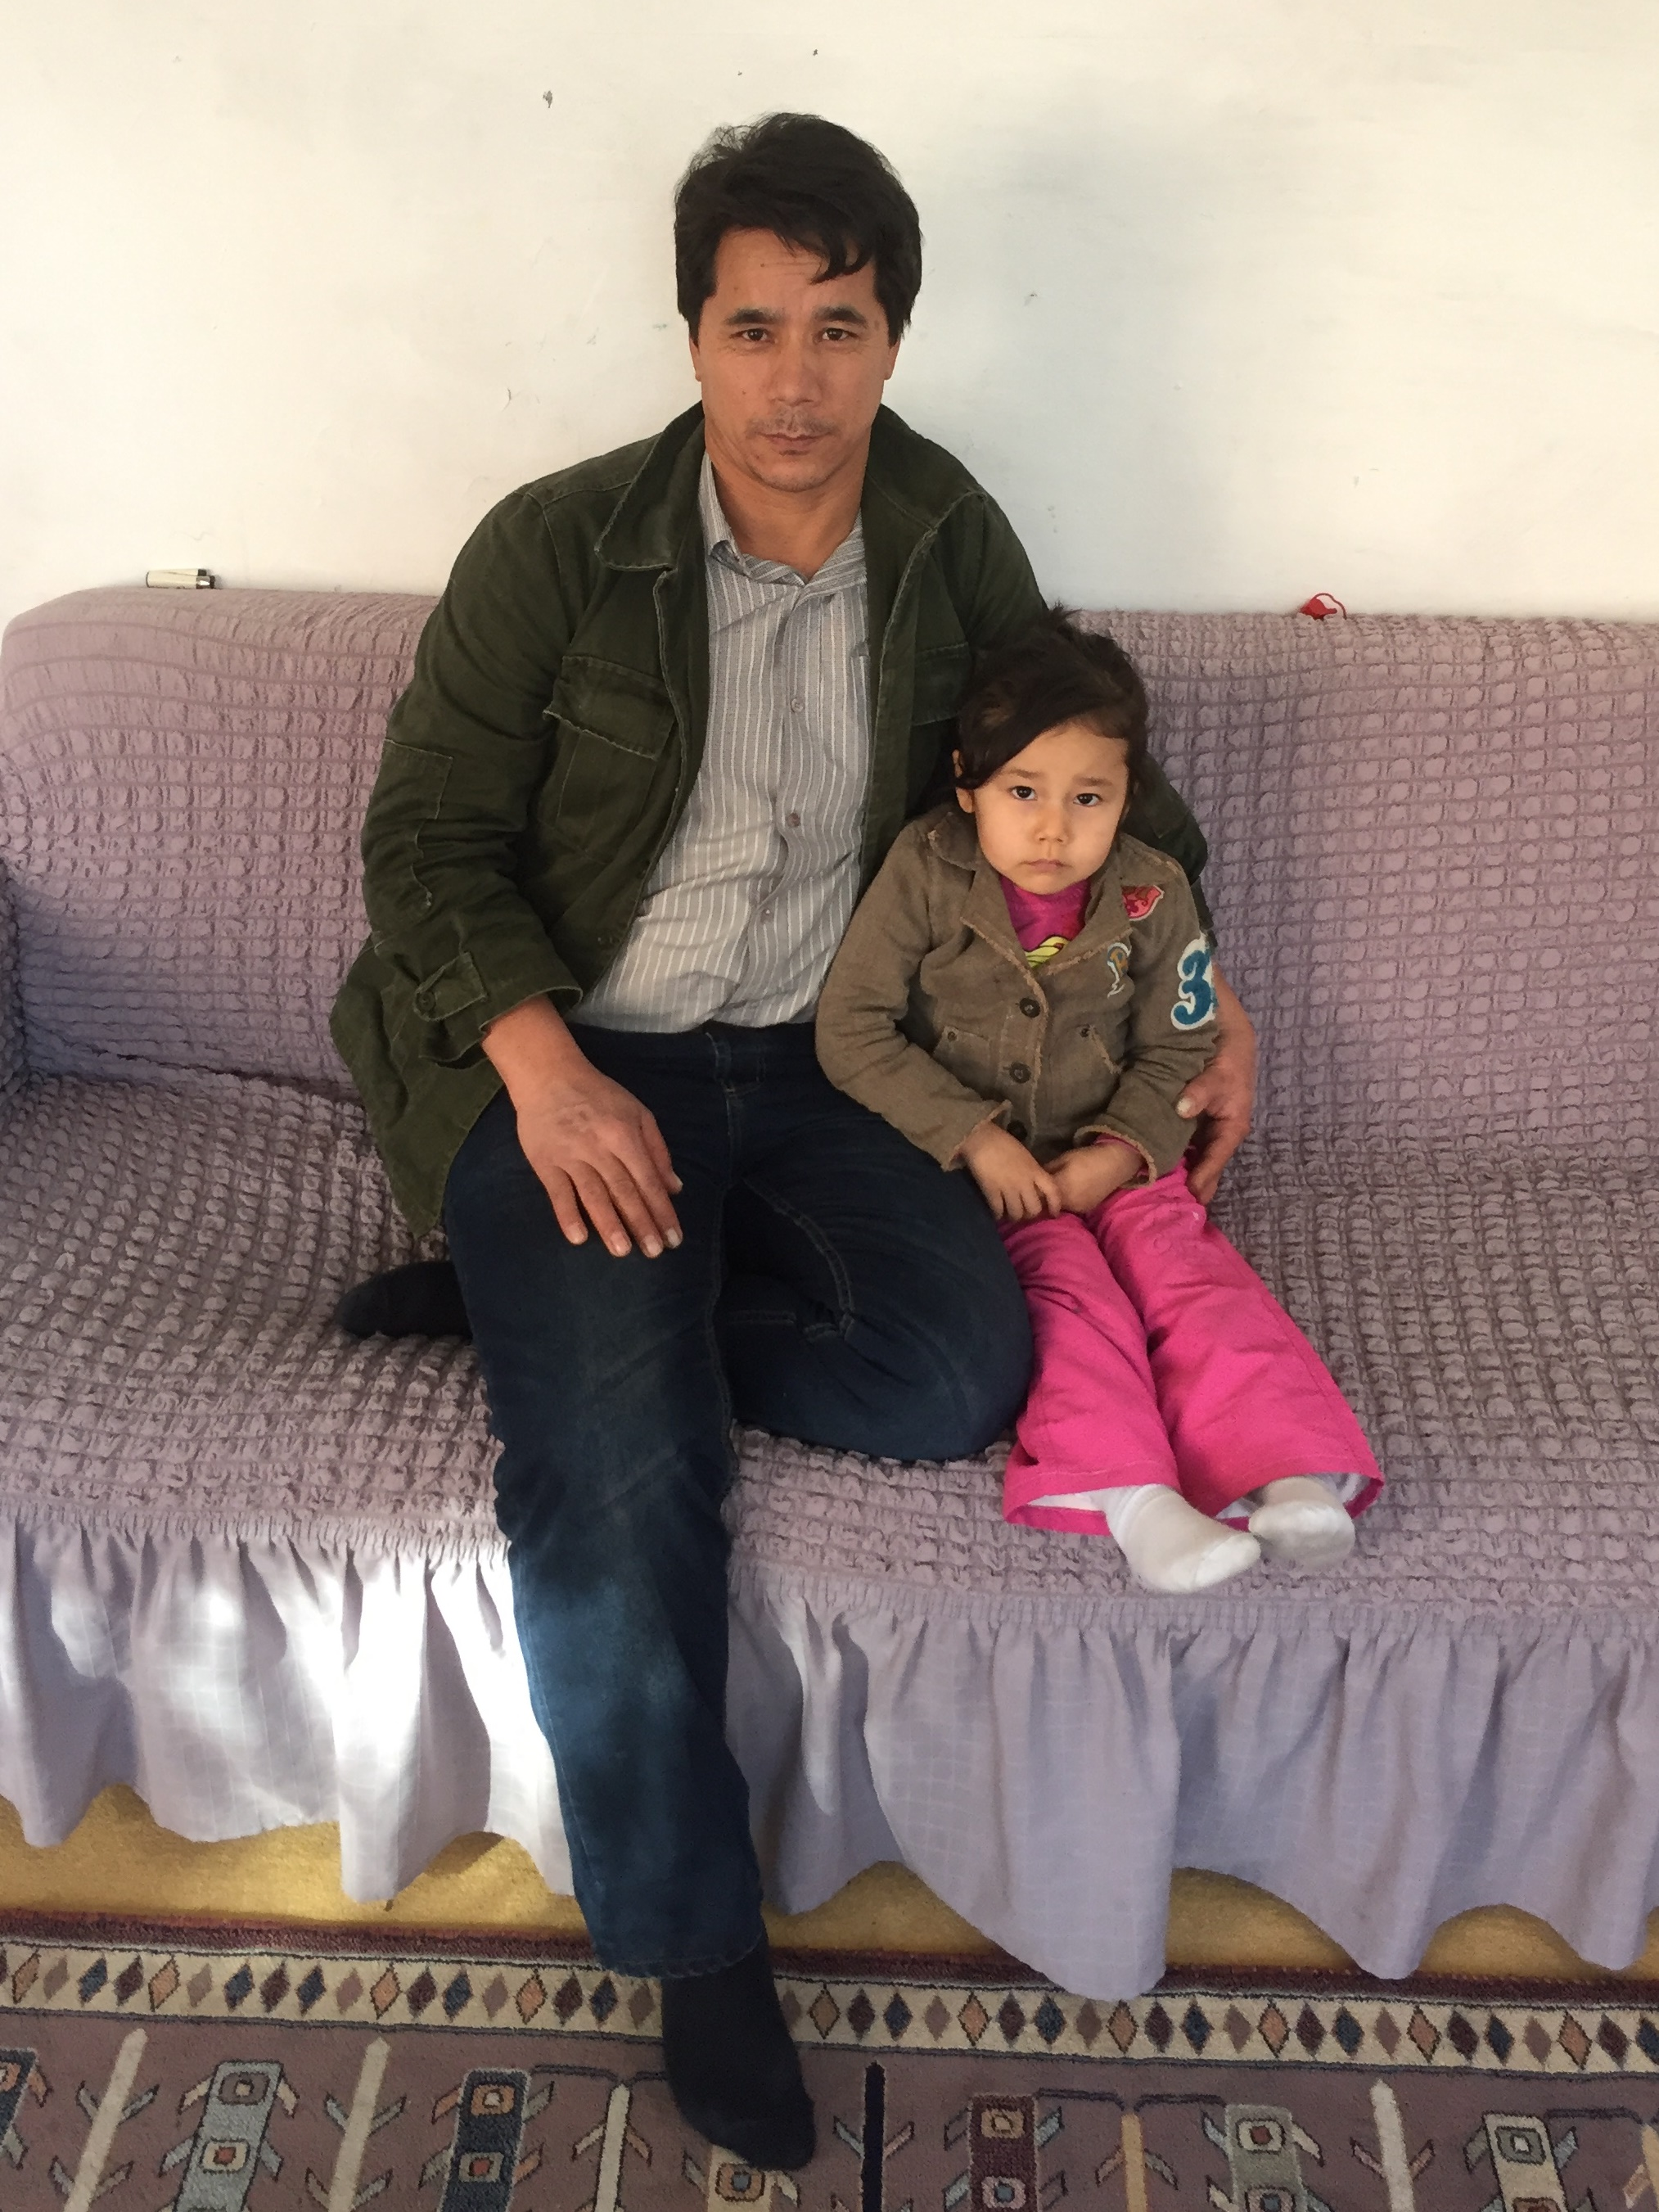 An Afghan refugee and his daughter in Aksaray, Turkey.